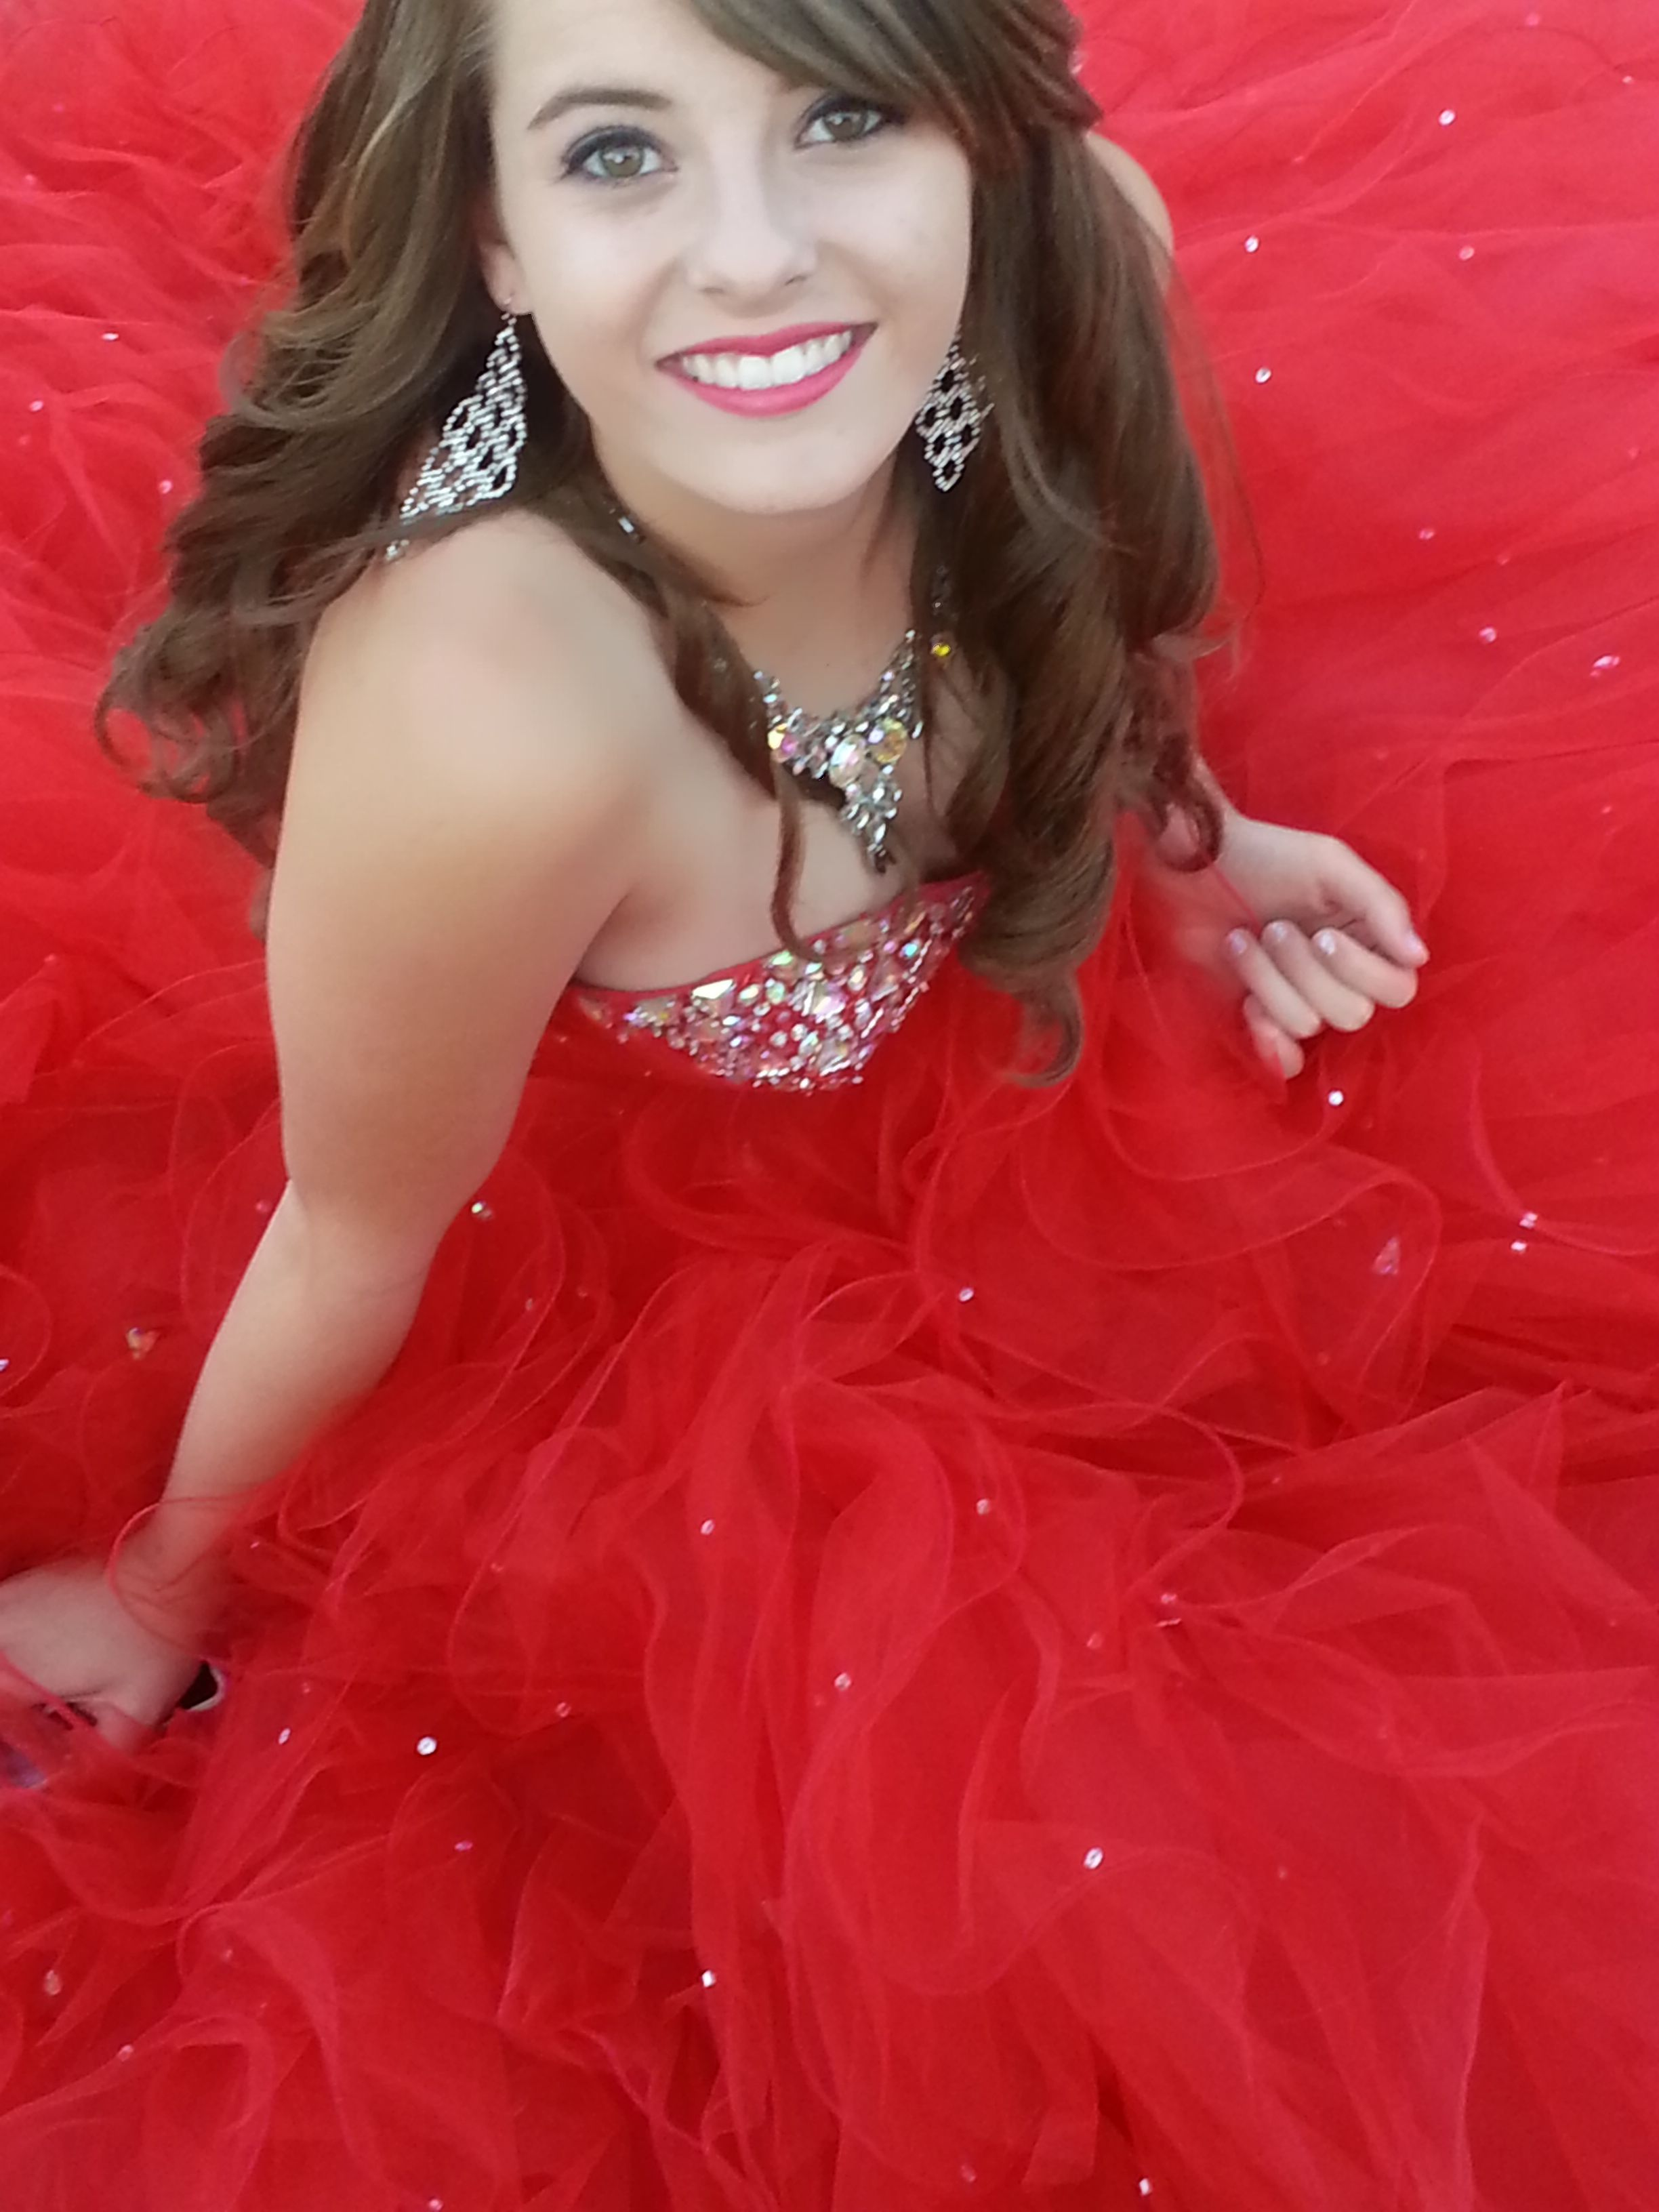 banquet prom poses red mori lee ball gown pretty prom hair prom